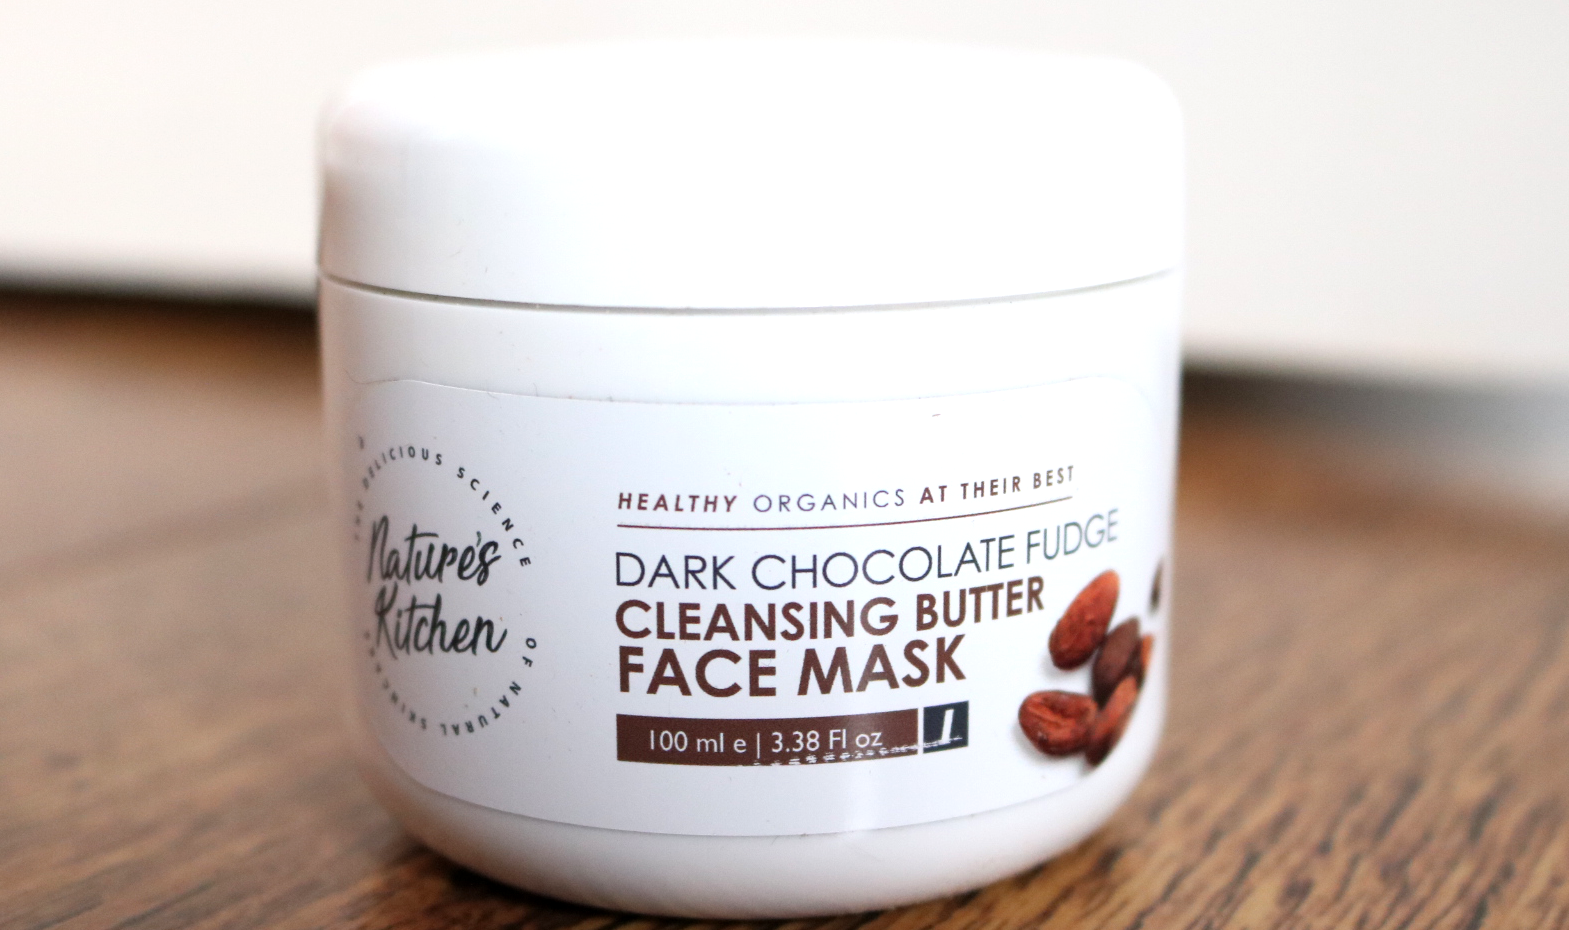 Nature's Kitchen Dark Chocolate Fudge Cleansing Butter Face Mask